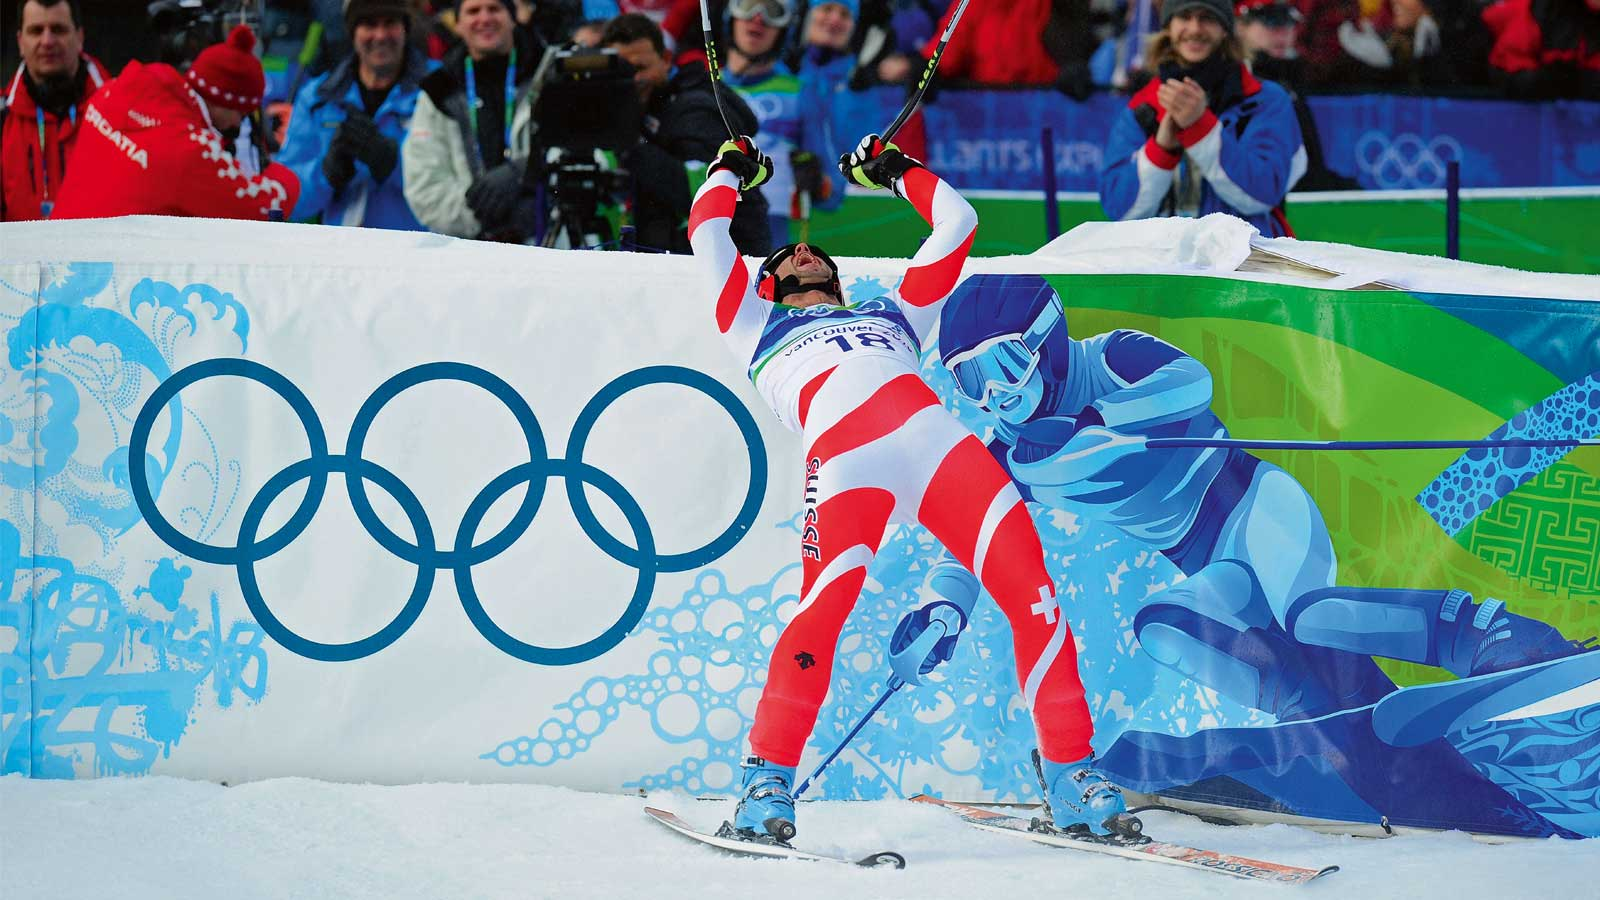 imgpreview_tvcolympic_large_14